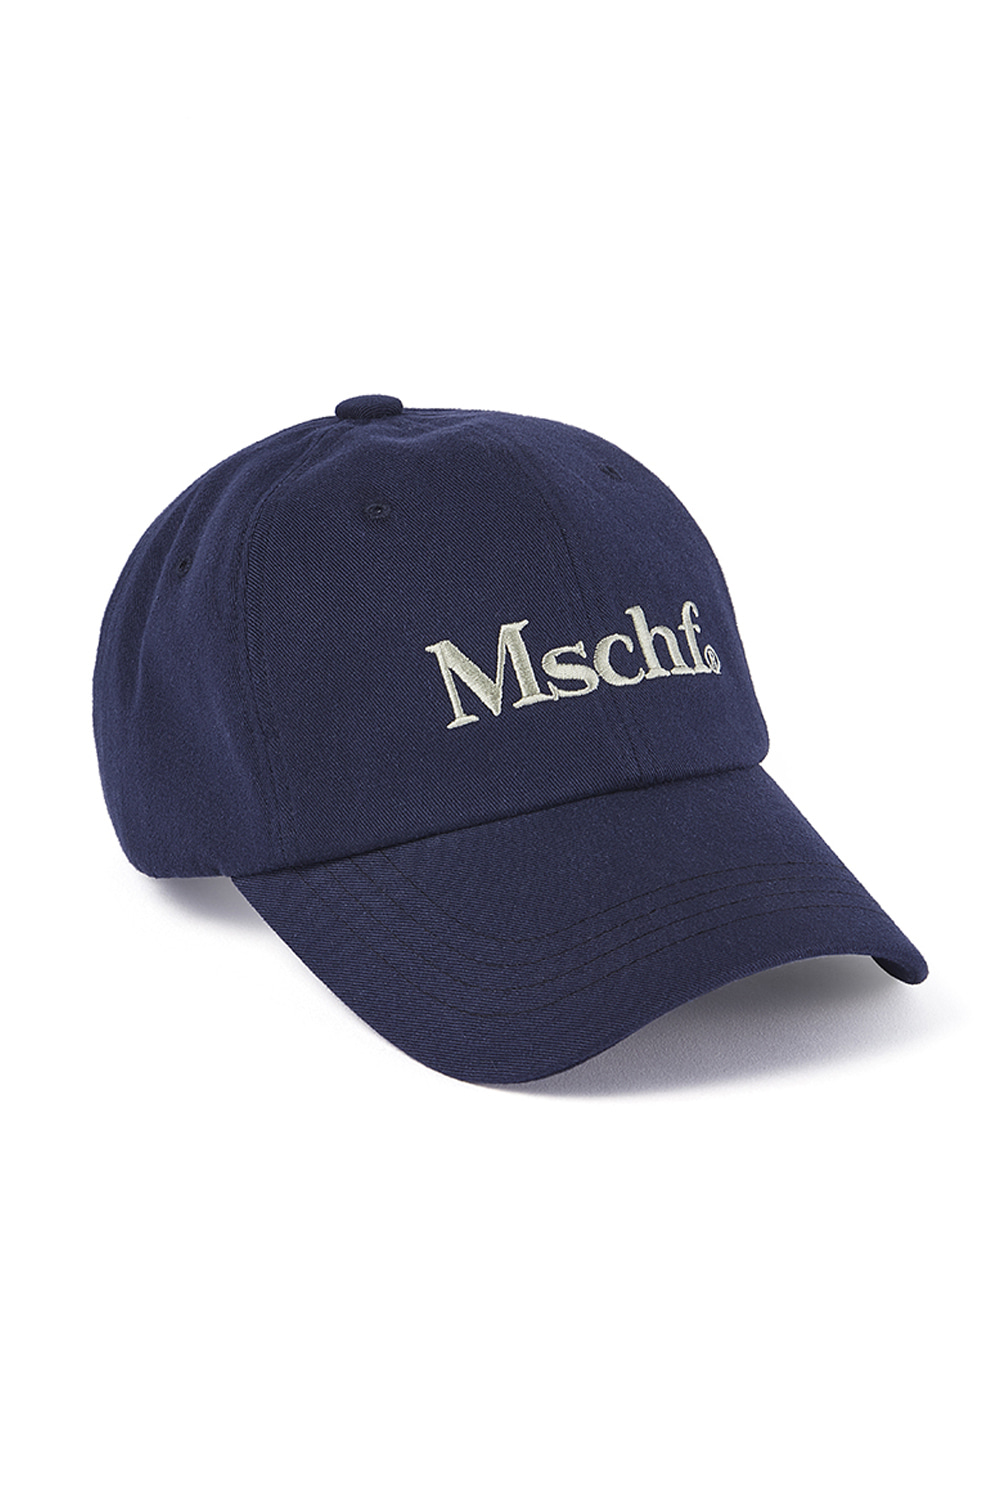 CULTURE BALL CAP_navy